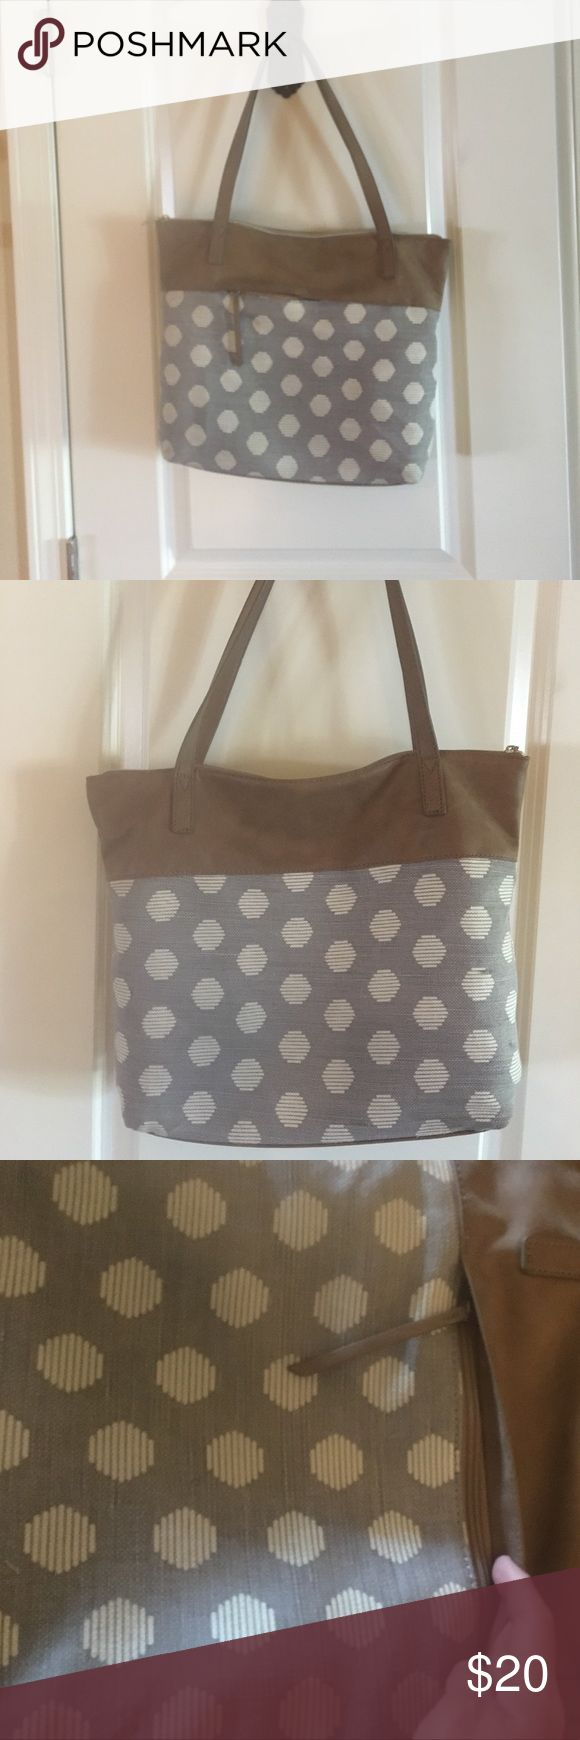 Cute gray and brown polka dot purse Used for a few months.  Normal wear from everyday use but overall in great condition.  No stains found on inside.  Very tiny spots on one side that could probably be wiped off with Chlorox wipe.  Not real leather Kim Rogers Bags Shoulder Bags